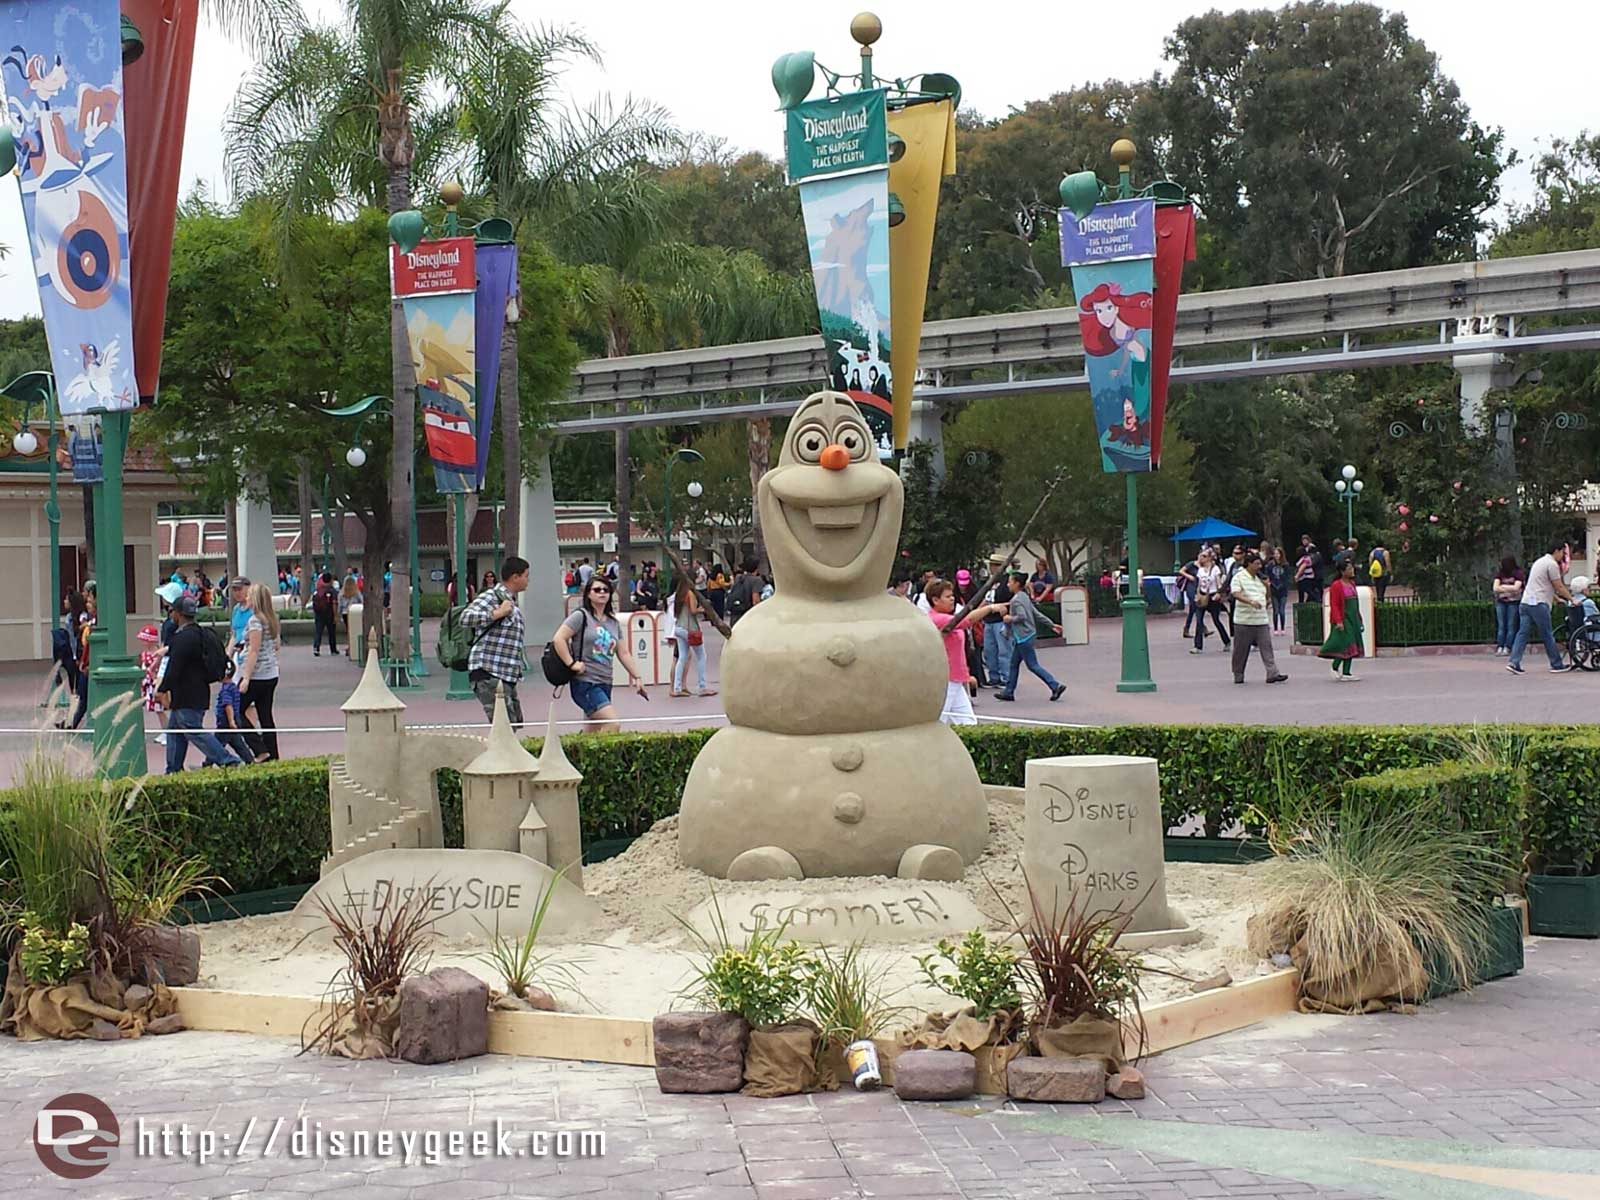 A sand Olaf in the Esplanade #Disney24  #DisneySide